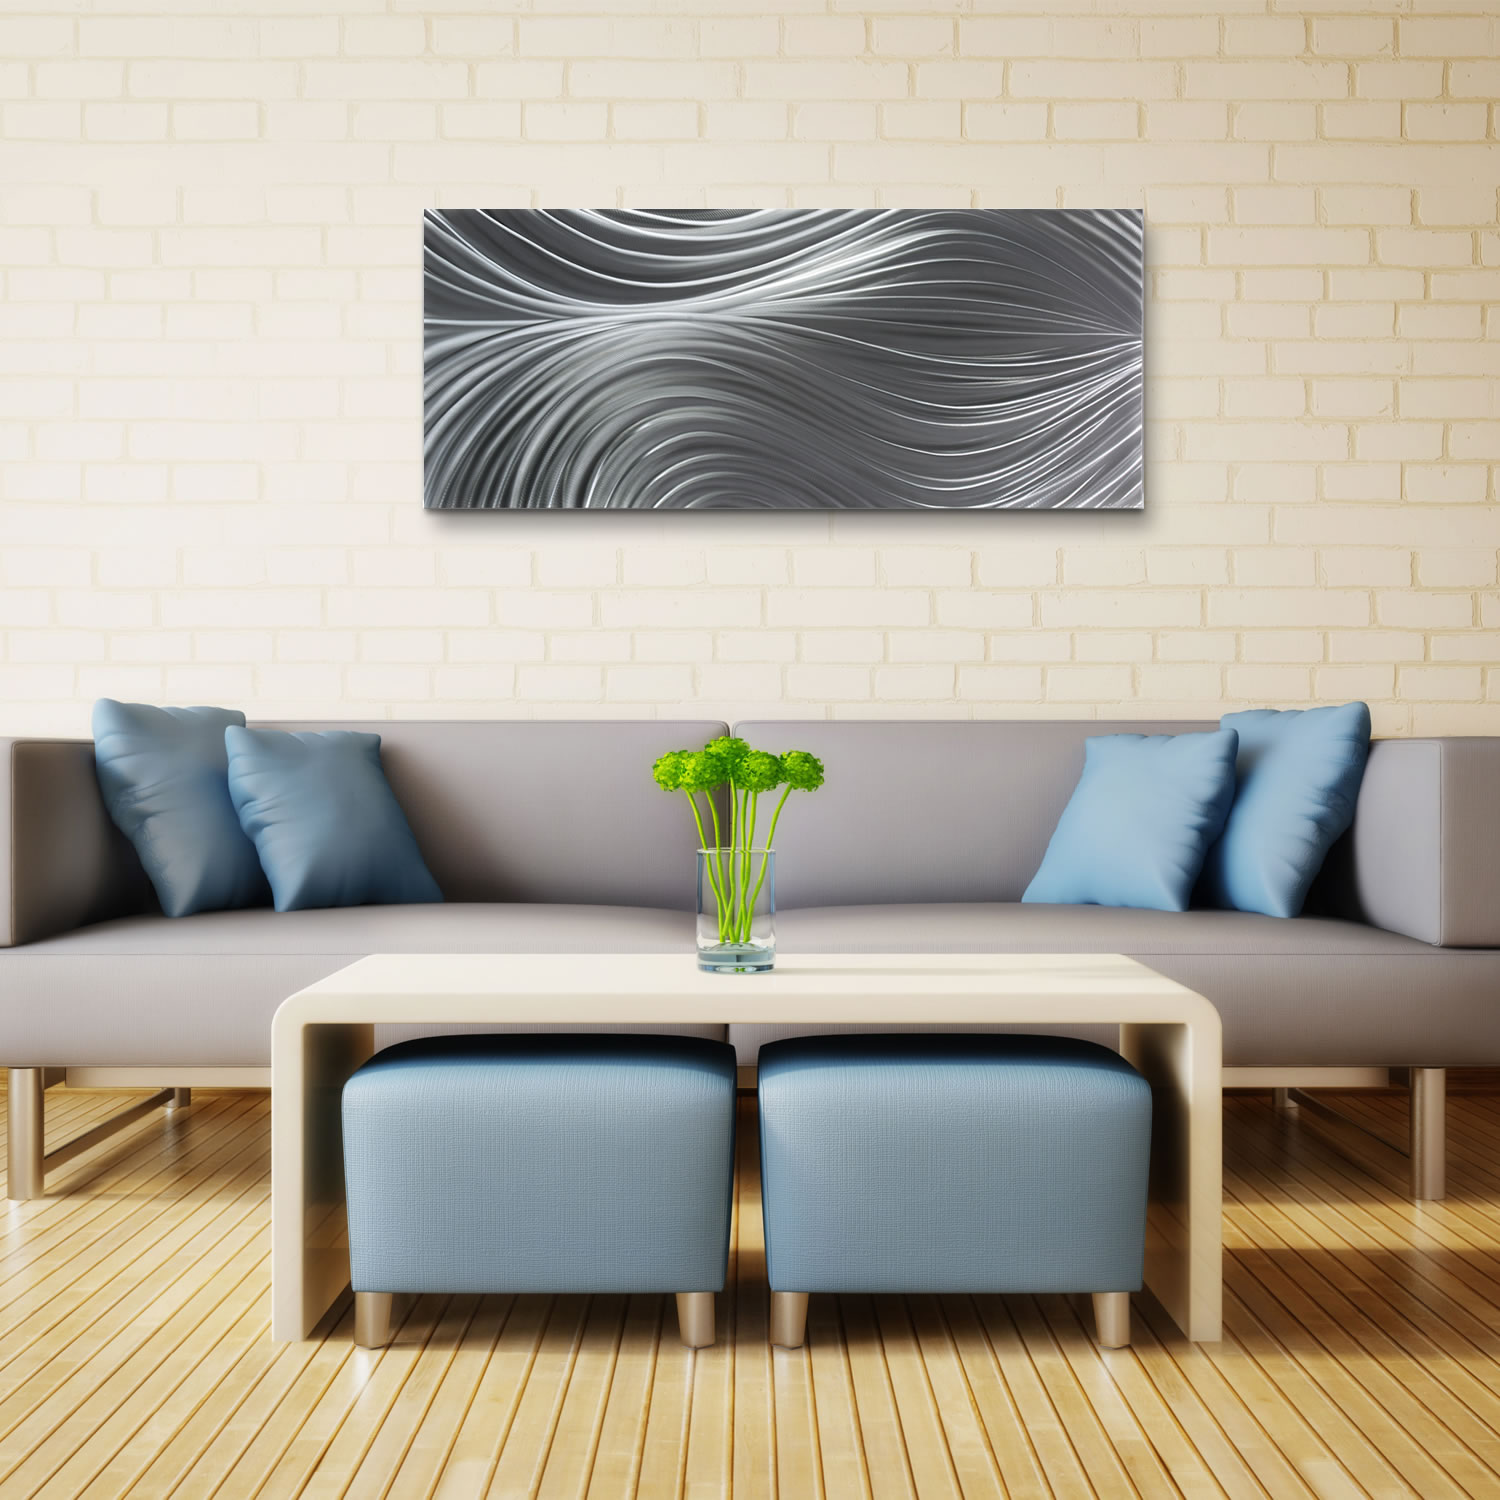 Passing Currents Composition - HD Metal Art Photo Print - Lifestyle Image